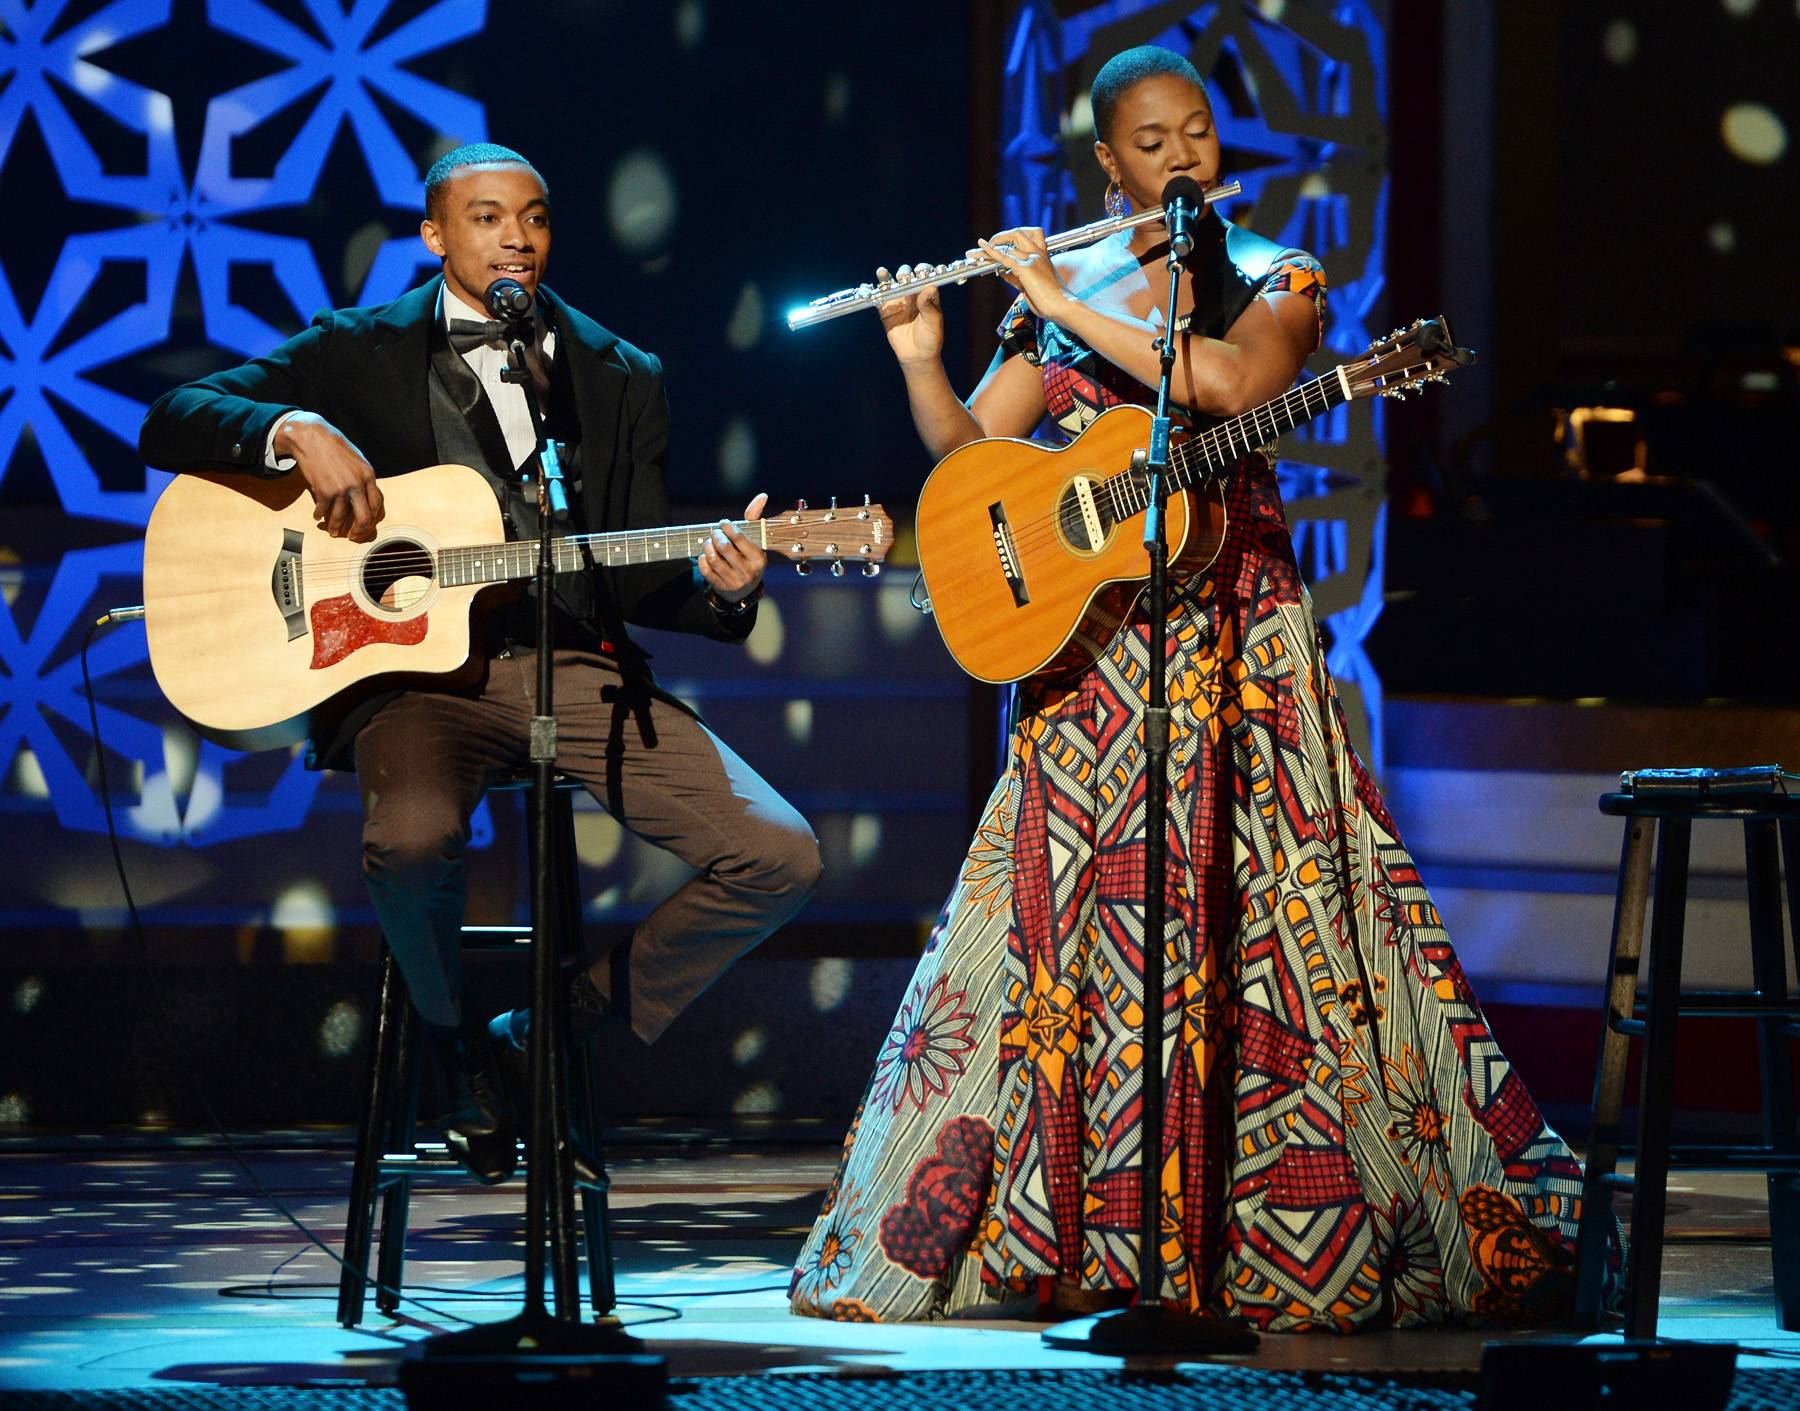 """The First """"String"""" Team - Four-time Grammy Award-winning artist India.Arie soars on stage with fellow guitarist and vocalist, Jonathan McReynolds.(Photo: Jason Kempin/Getty Images for BET)"""